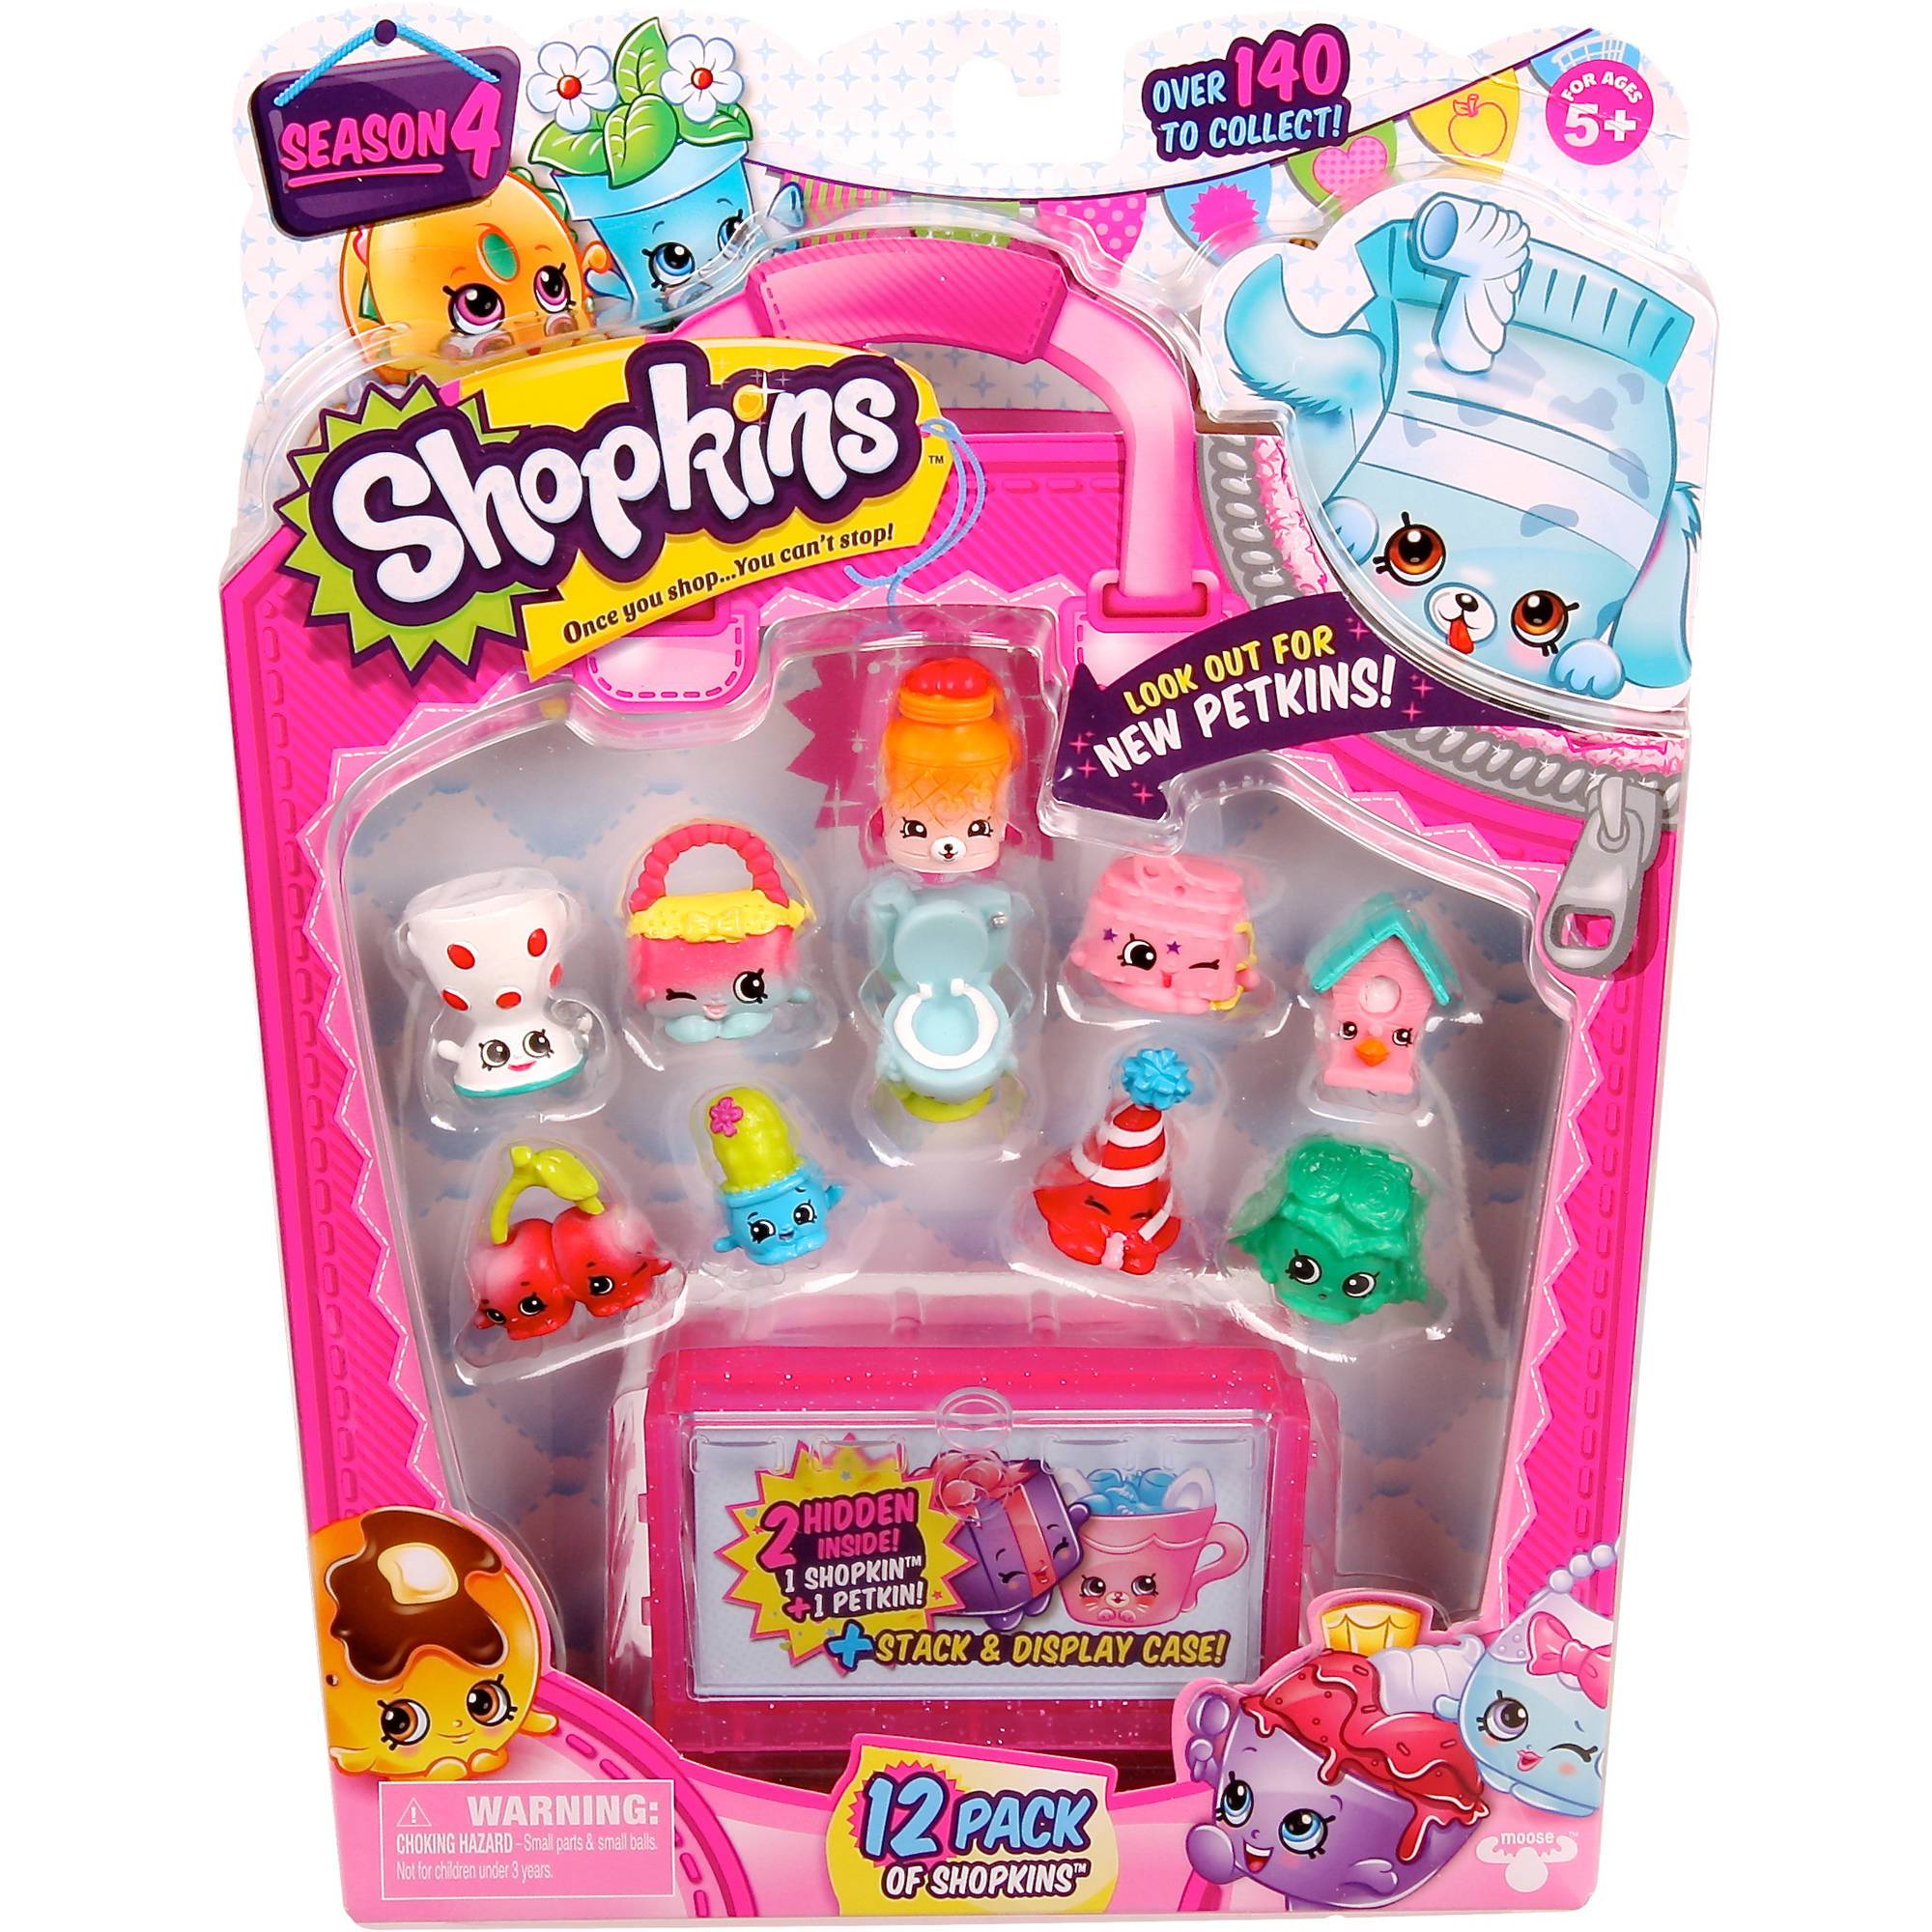 Shopkins Season 4 12-Pack